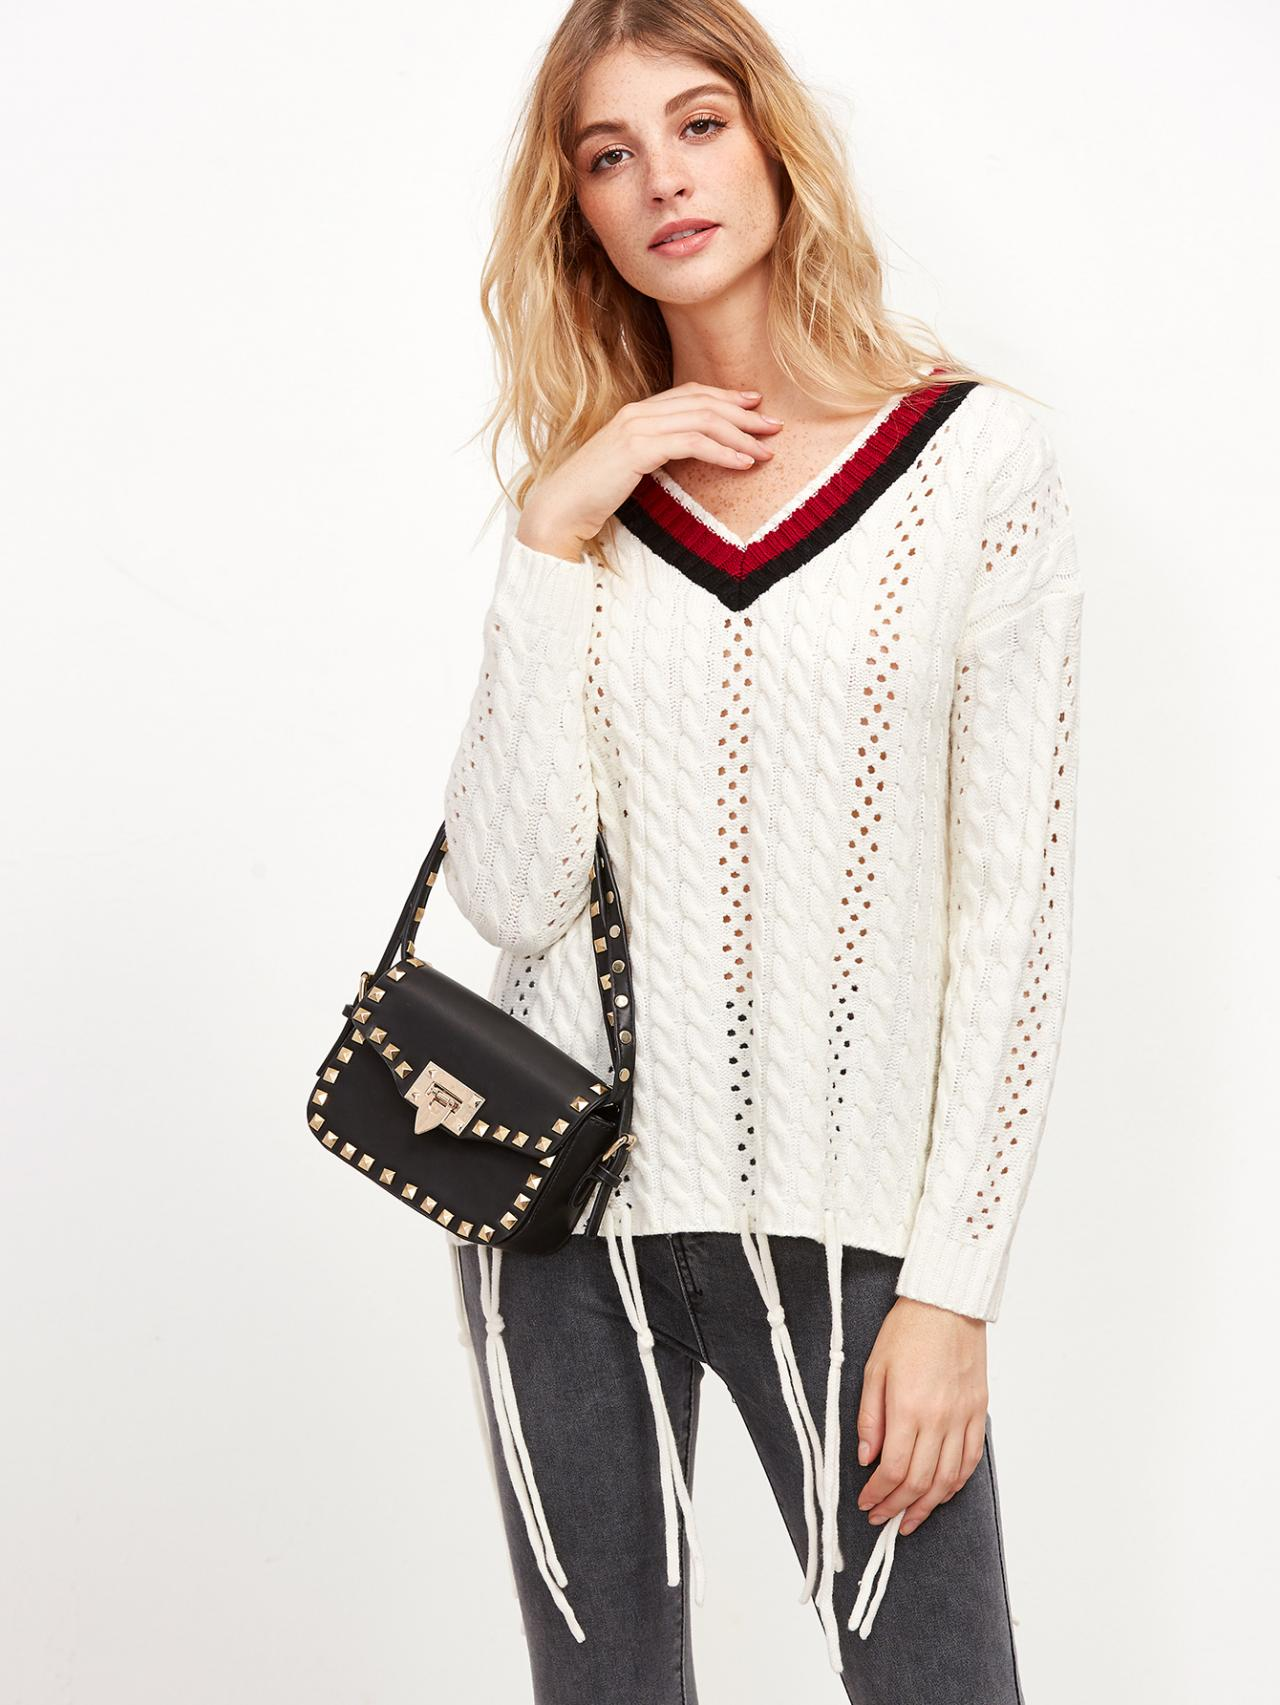 Plunge V Open-Knit Sweater Featuring Stripes Neckline and Knotted String Hem